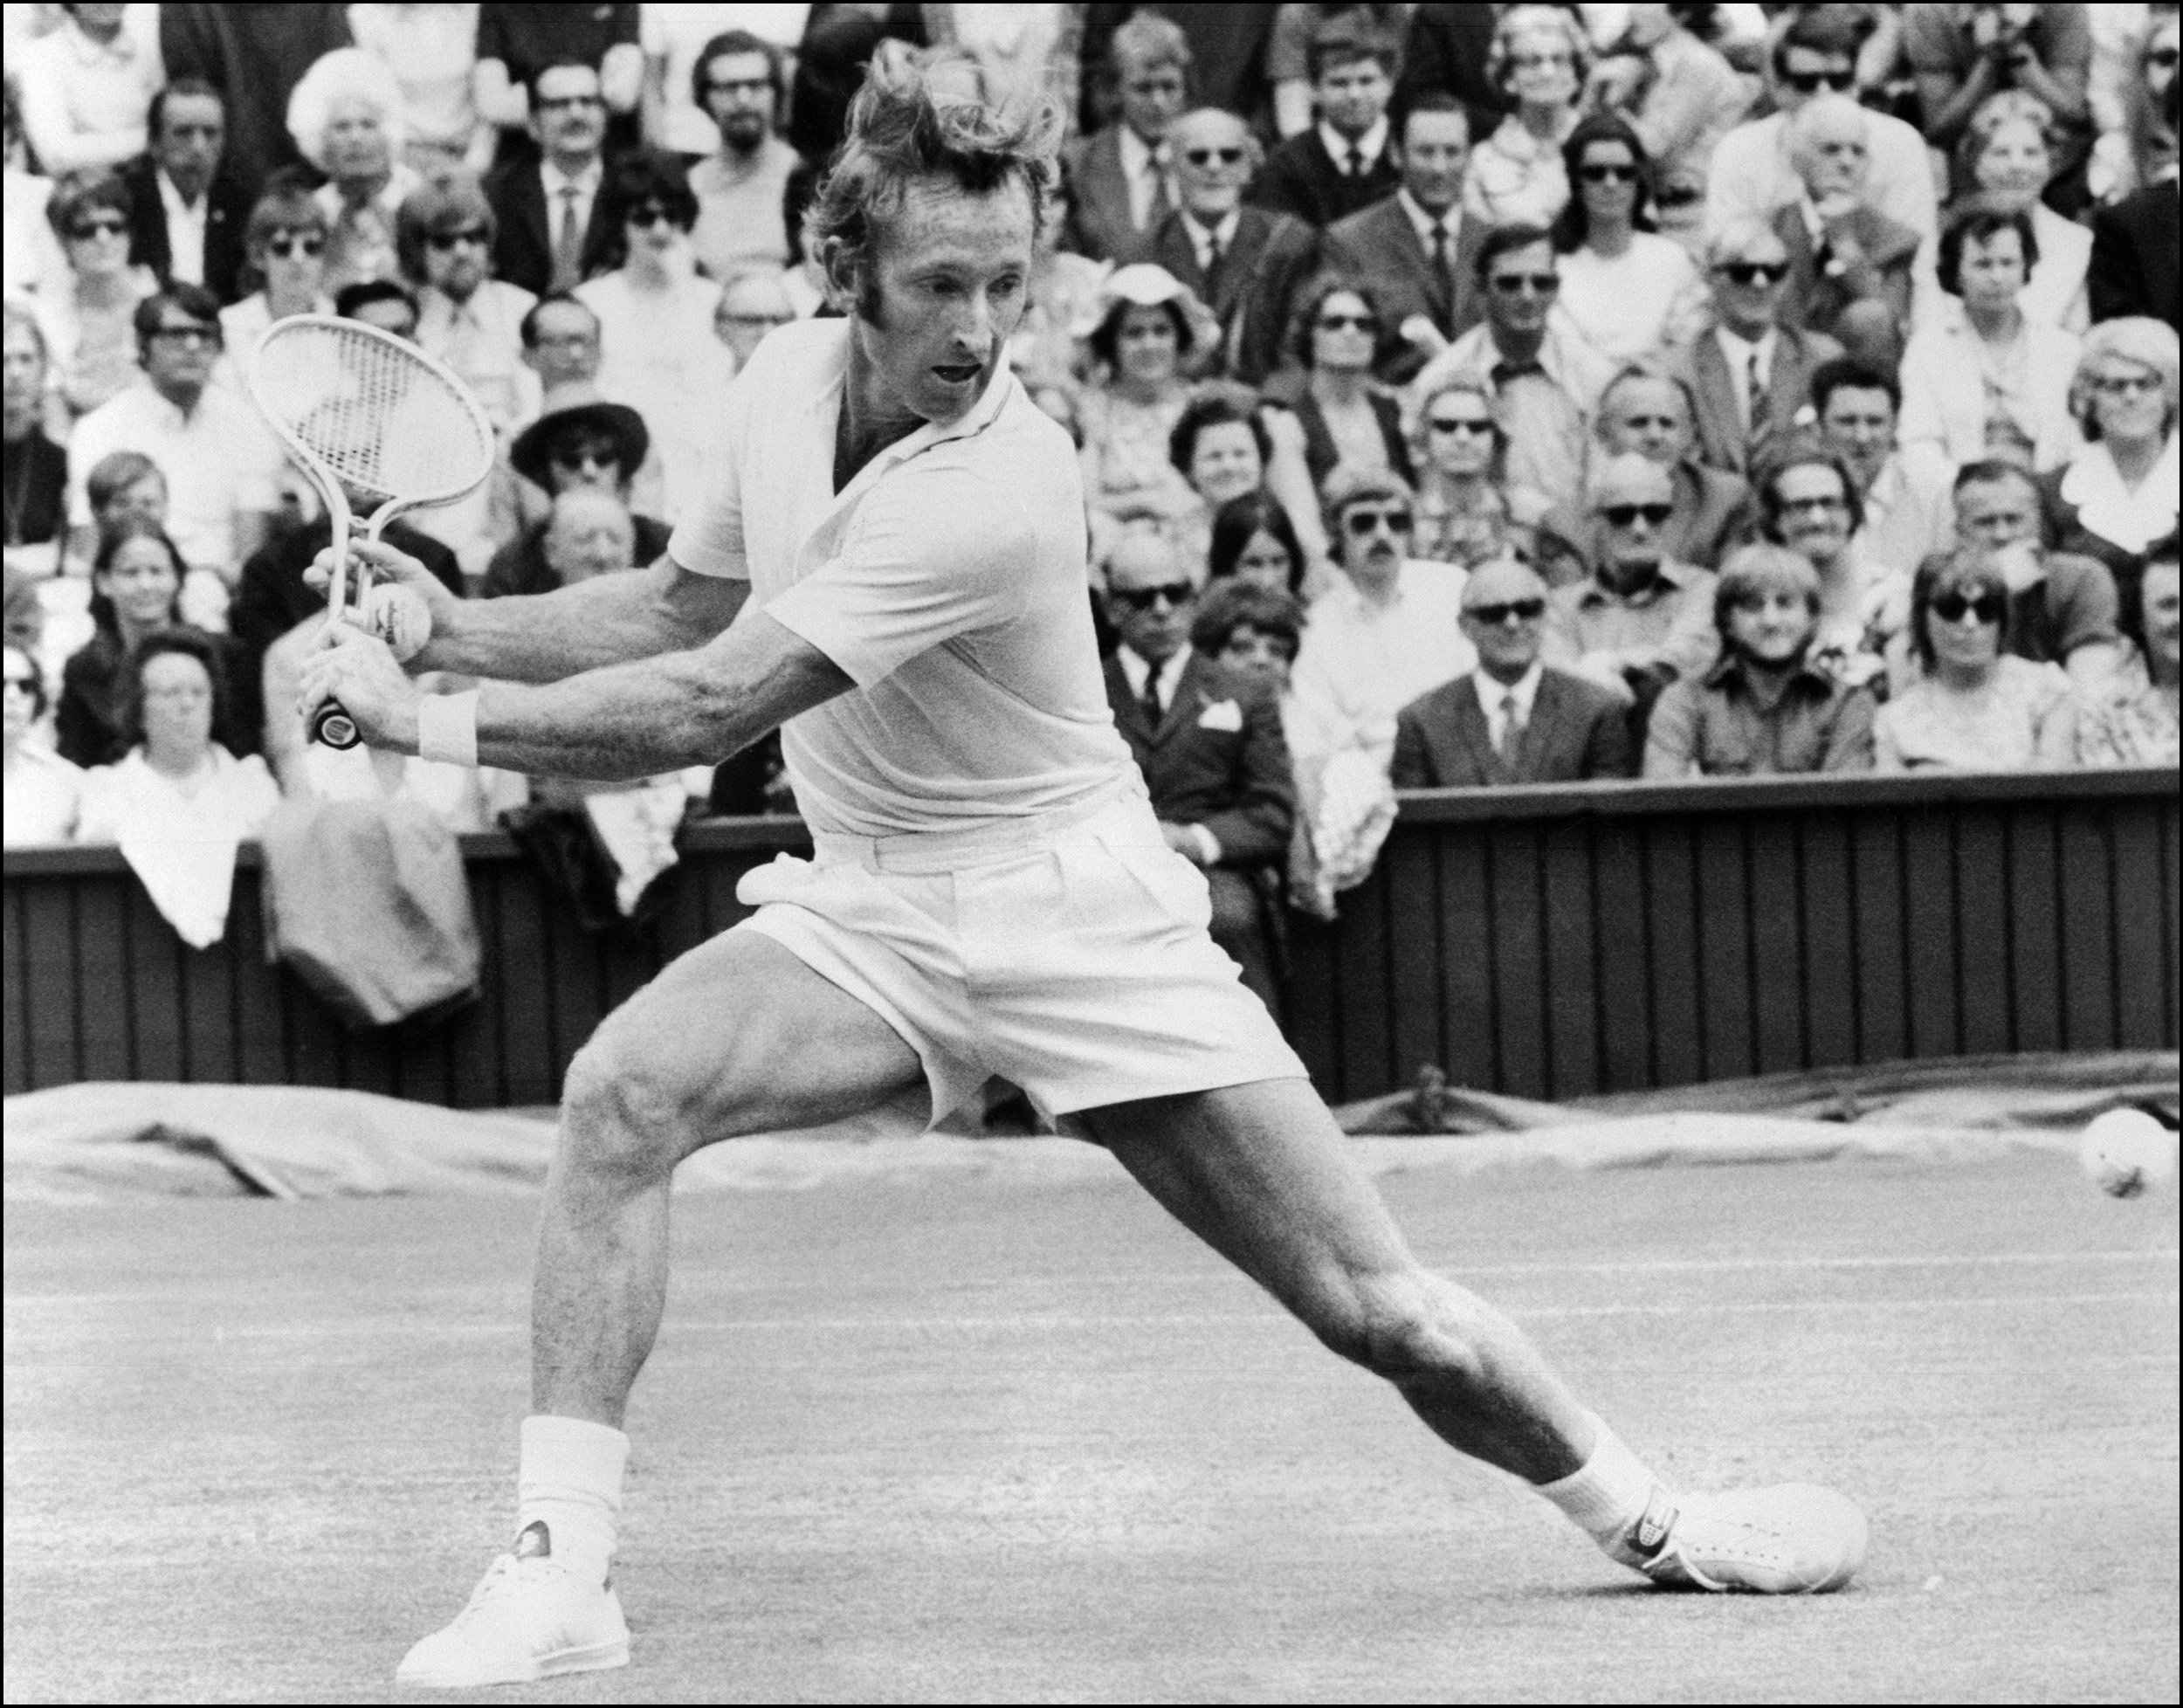 Australian tennis great Rod Laver in action during the 1971 Wimbledon Championships.